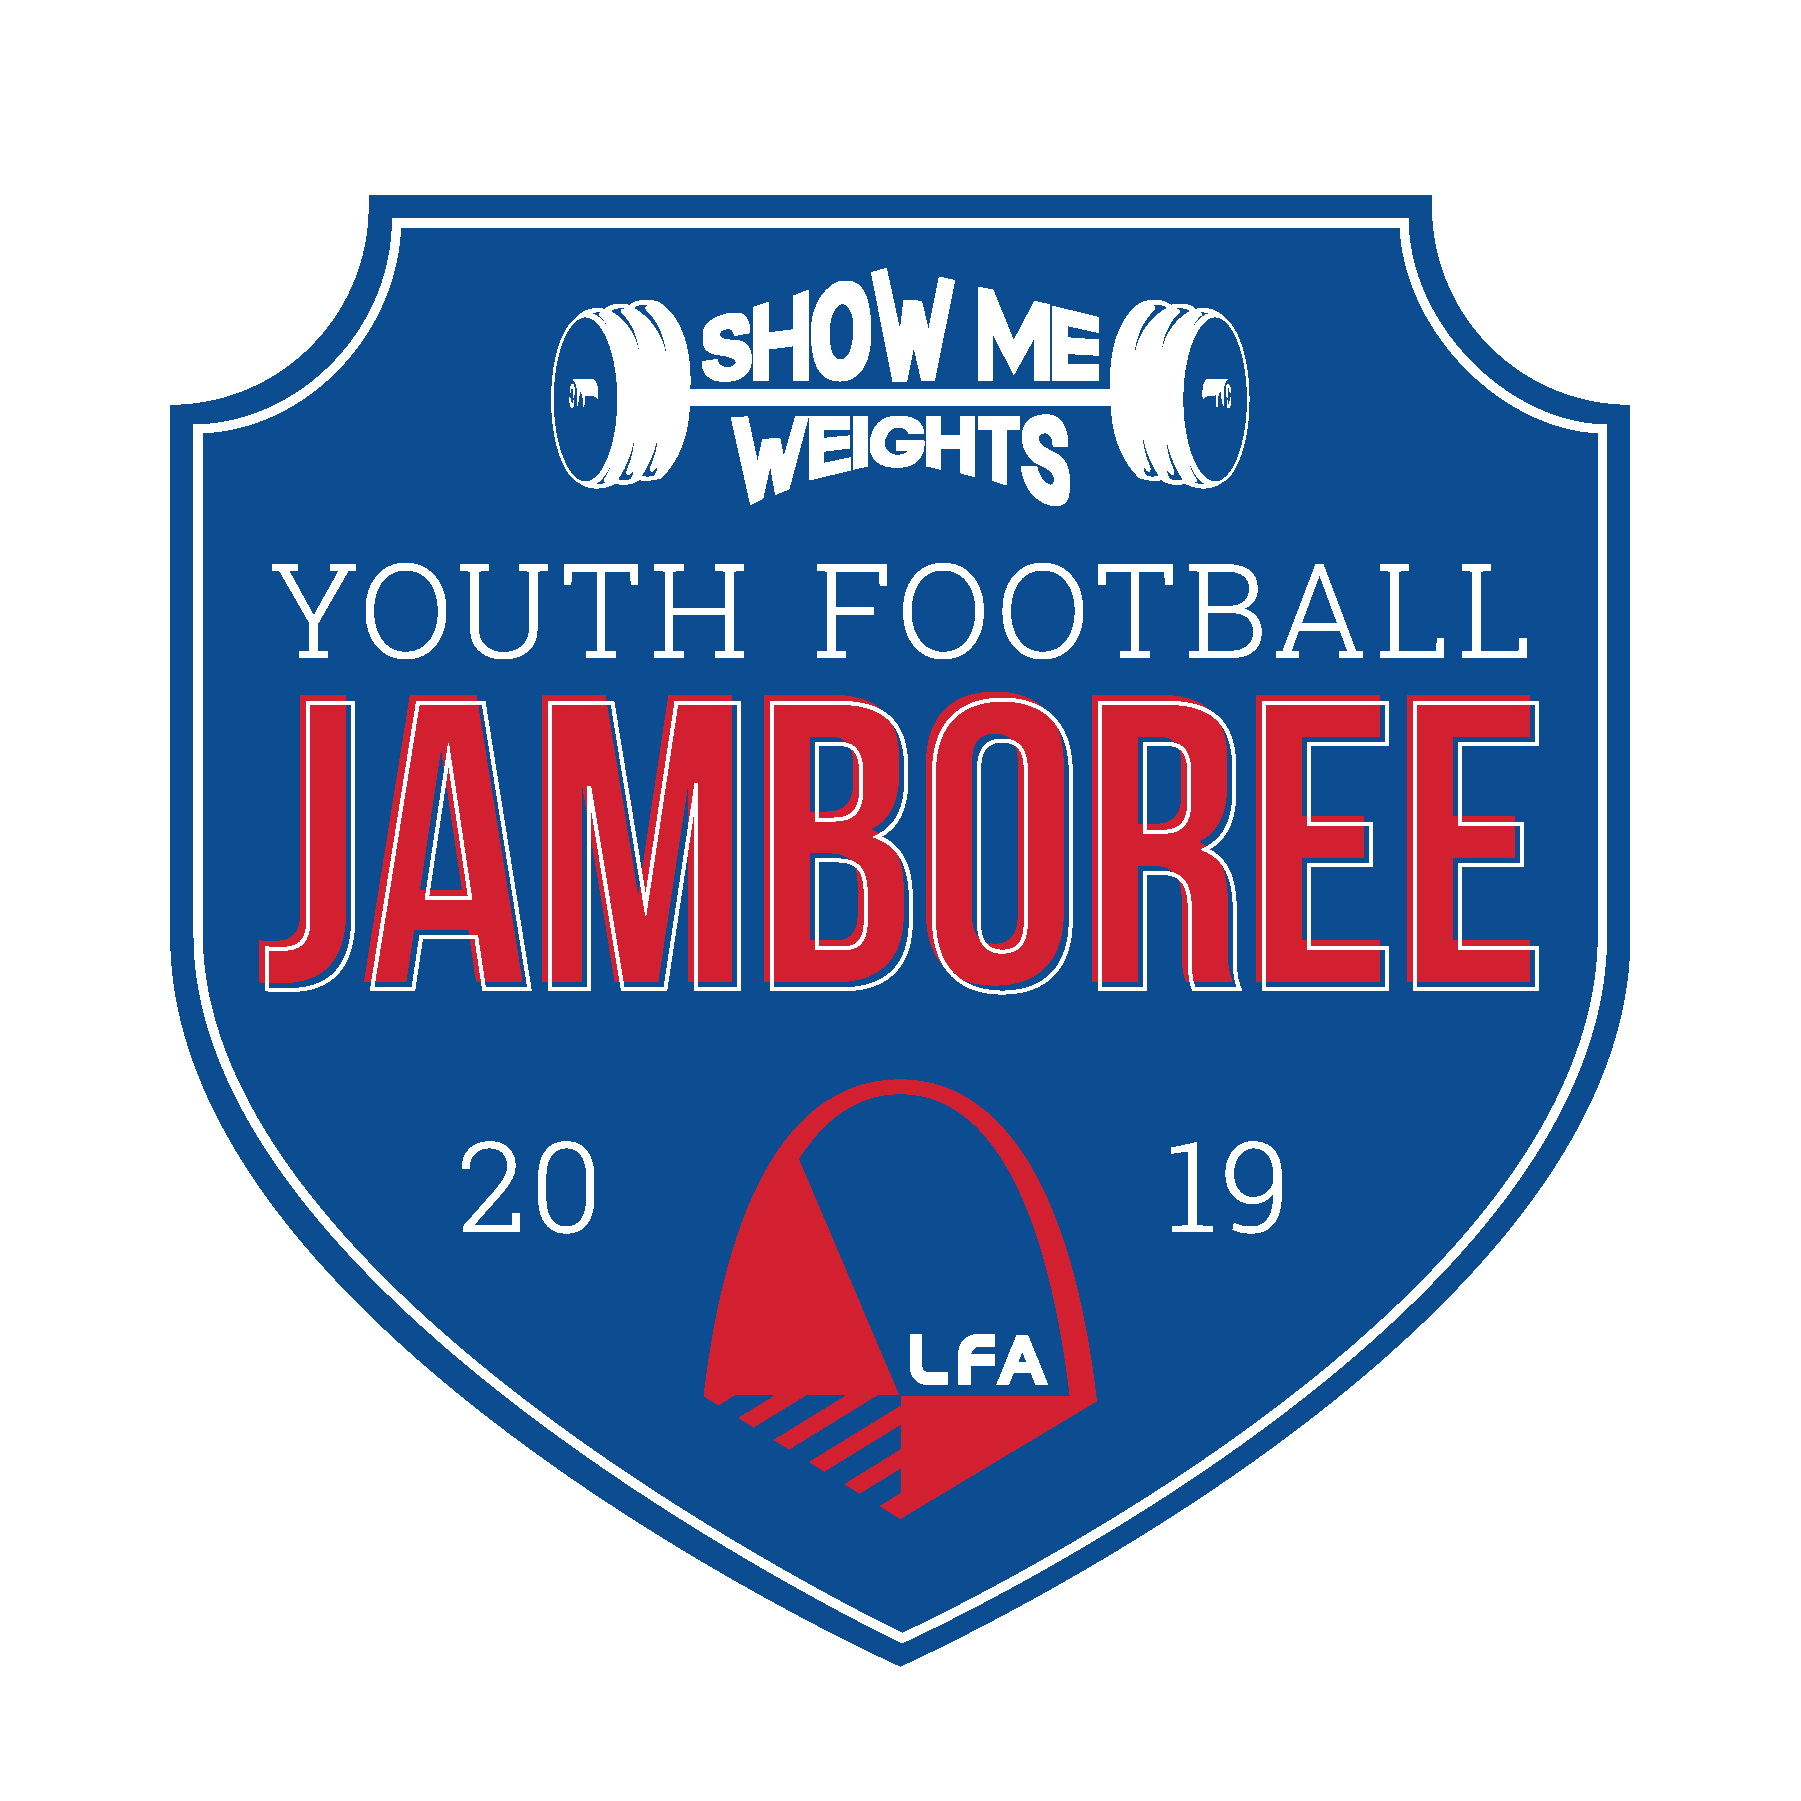 Youth Football Jamboree – Sponsored by Show Me Weights